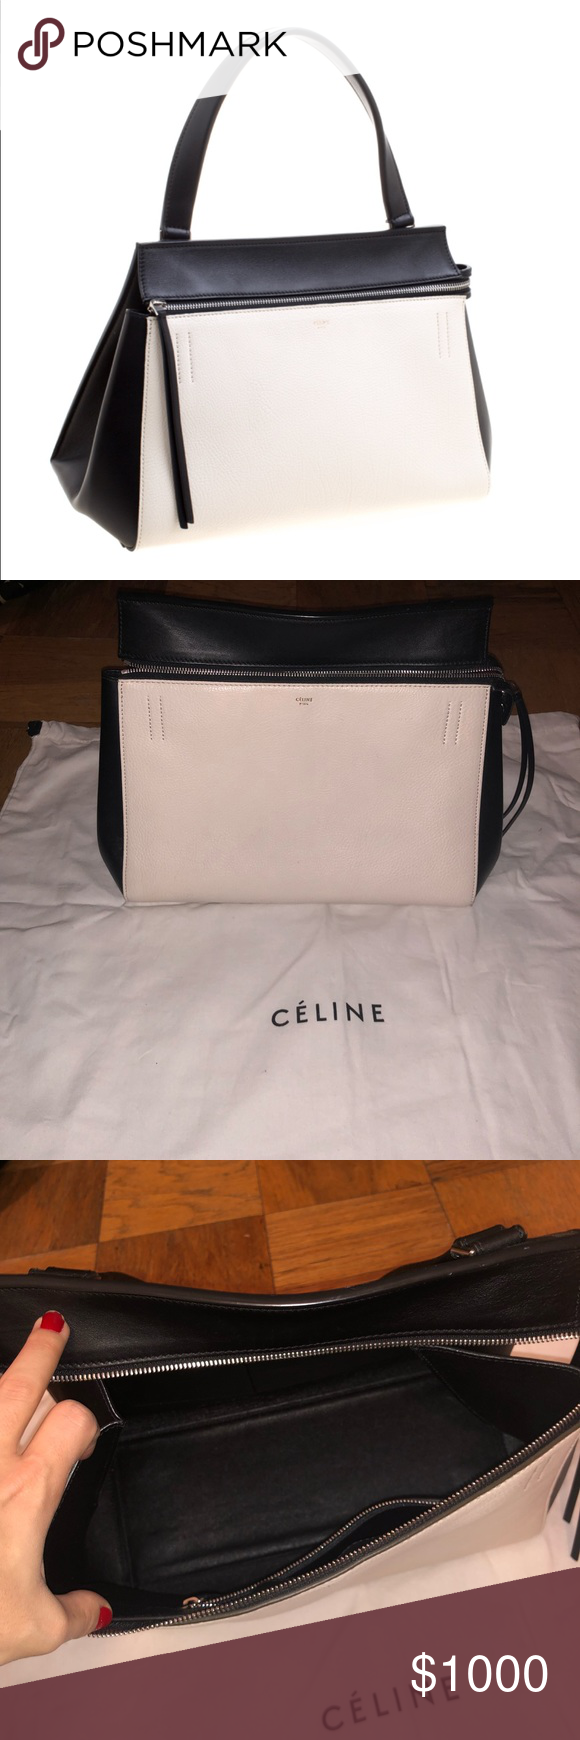 a8939ee641 Céline Médium Edge one shoulder bag Constructed in a neat silhouette